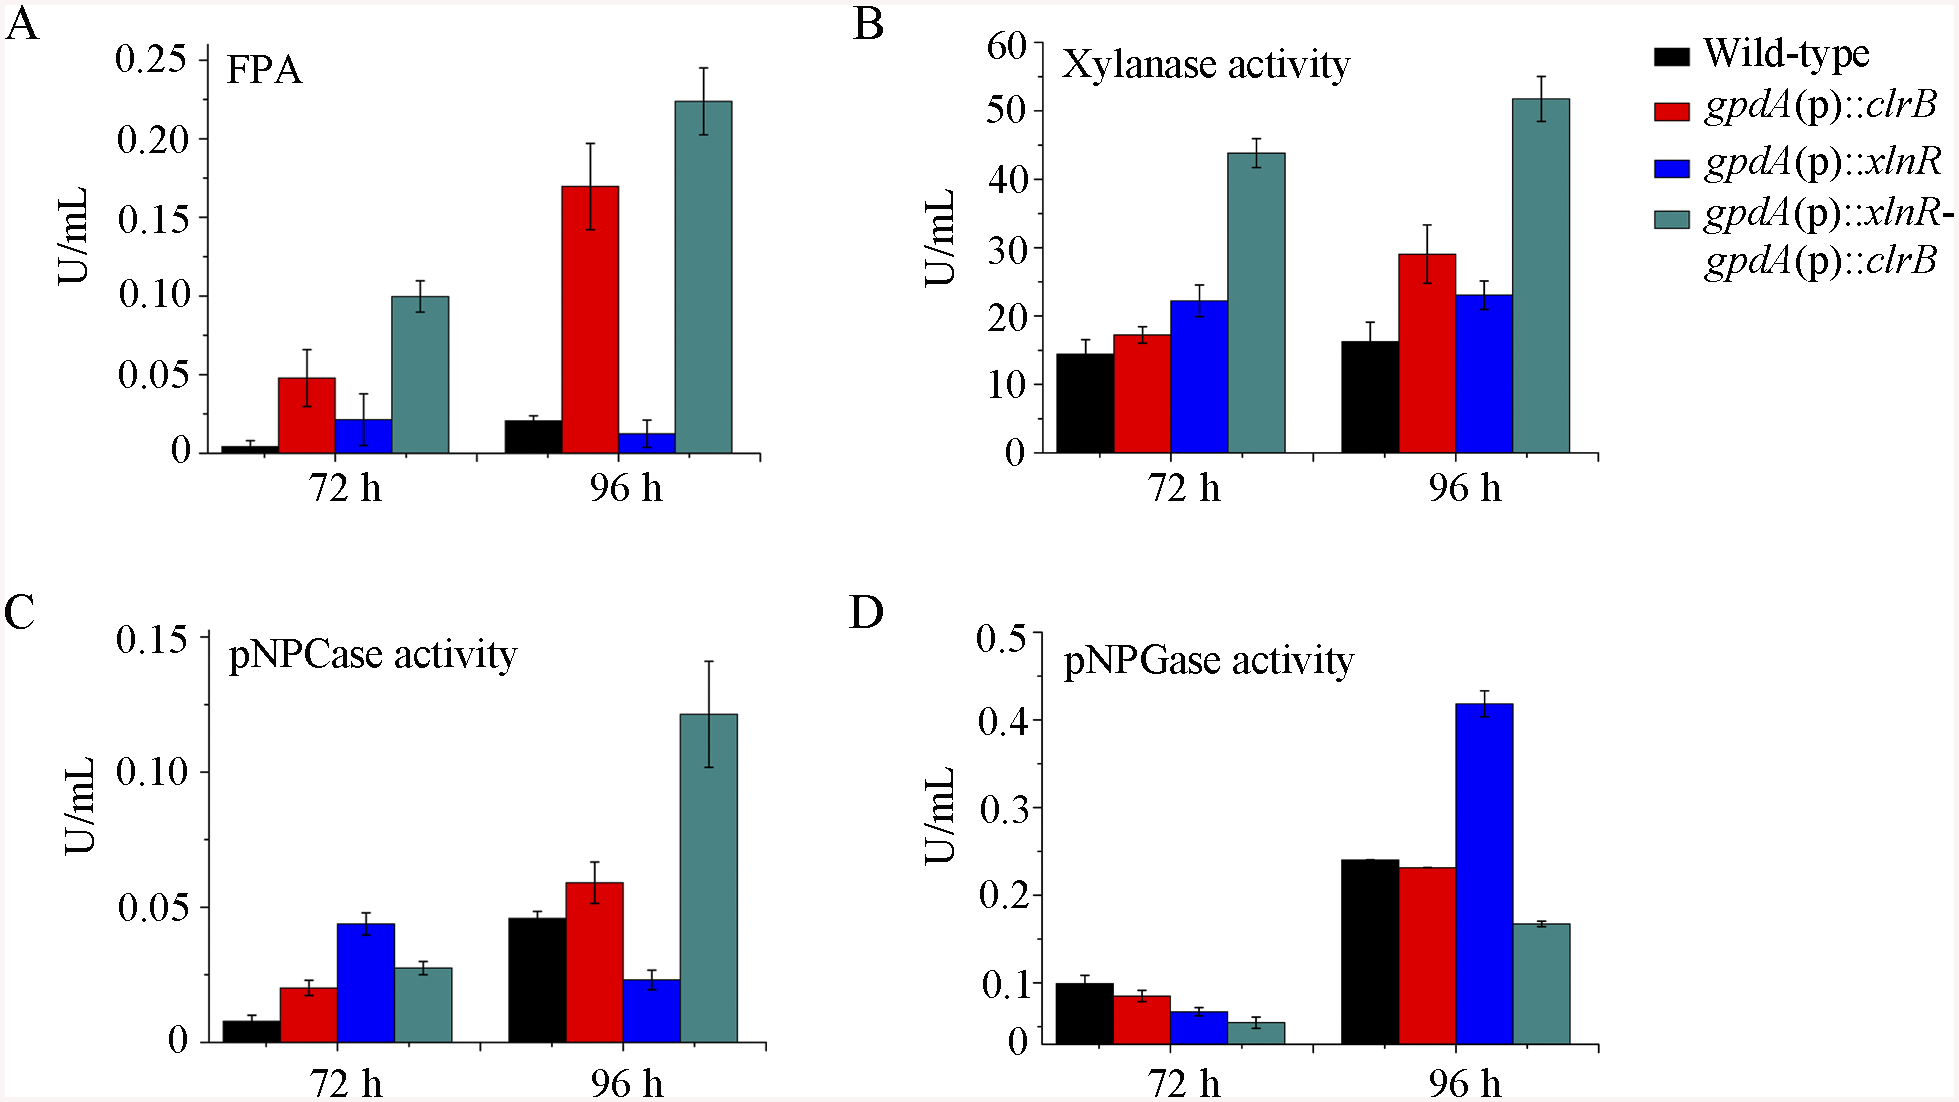 Enzyme activities of culture supernatants from mutants containing overexpression of <i>clrB</i> and/or <i>xlnR</i> on cellulose.